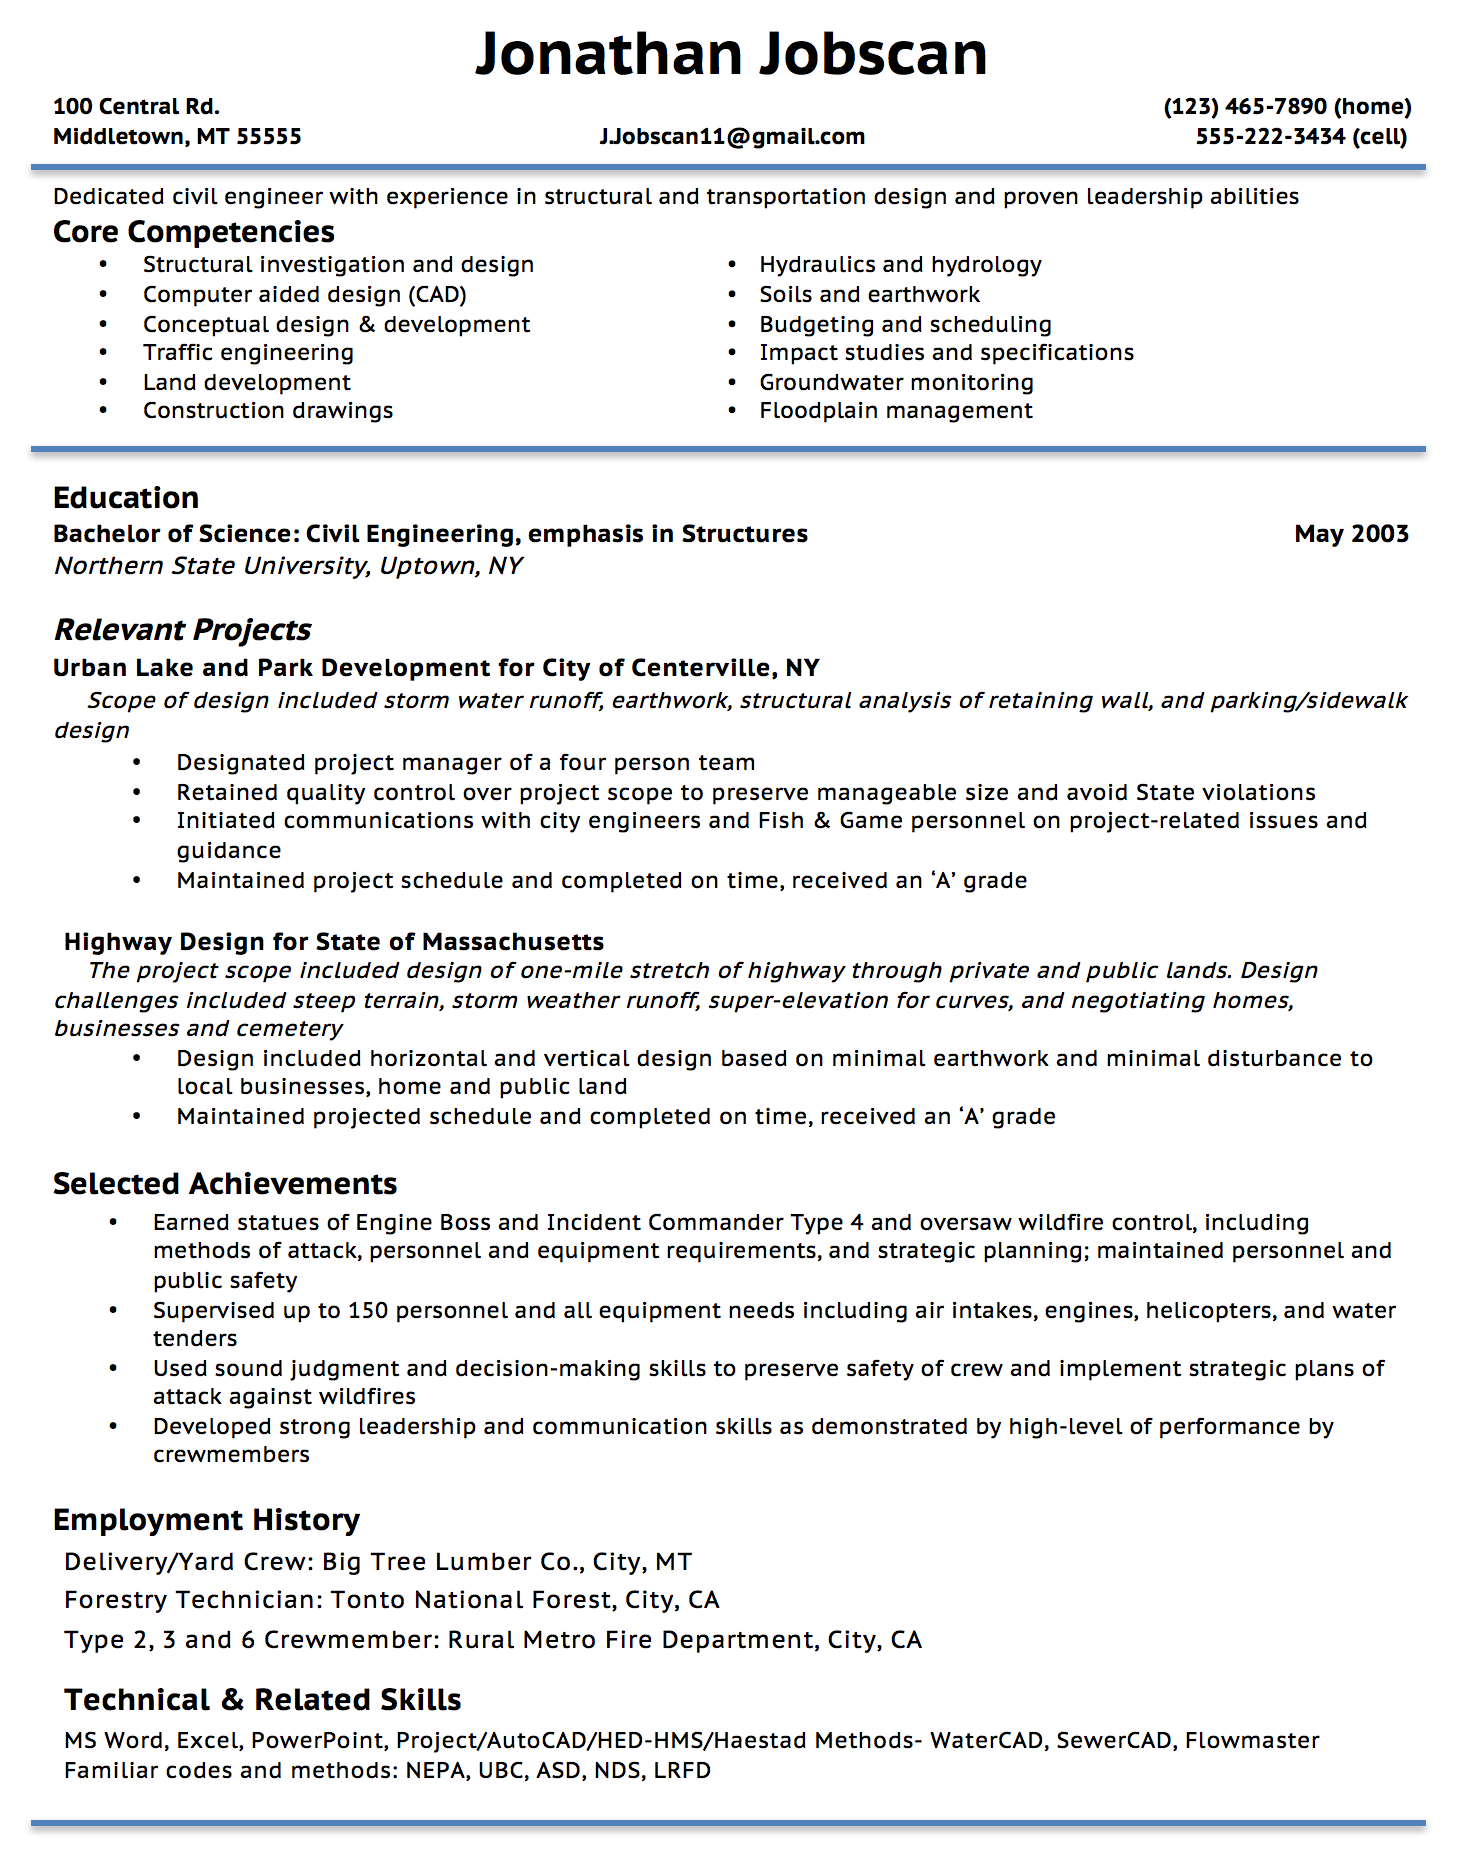 Picnictoimpeachus  Winsome Resume Writing Guide  Jobscan With Remarkable Example Of A Functional Resume Format With Amusing Truck Driver Sample Resume Also Resume Microsoft In Addition Keywords To Use In Resume And Anesthesiologist Resume As Well As Resume Template No Experience Additionally Monster Power Resume Search From Jobscanco With Picnictoimpeachus  Remarkable Resume Writing Guide  Jobscan With Amusing Example Of A Functional Resume Format And Winsome Truck Driver Sample Resume Also Resume Microsoft In Addition Keywords To Use In Resume From Jobscanco